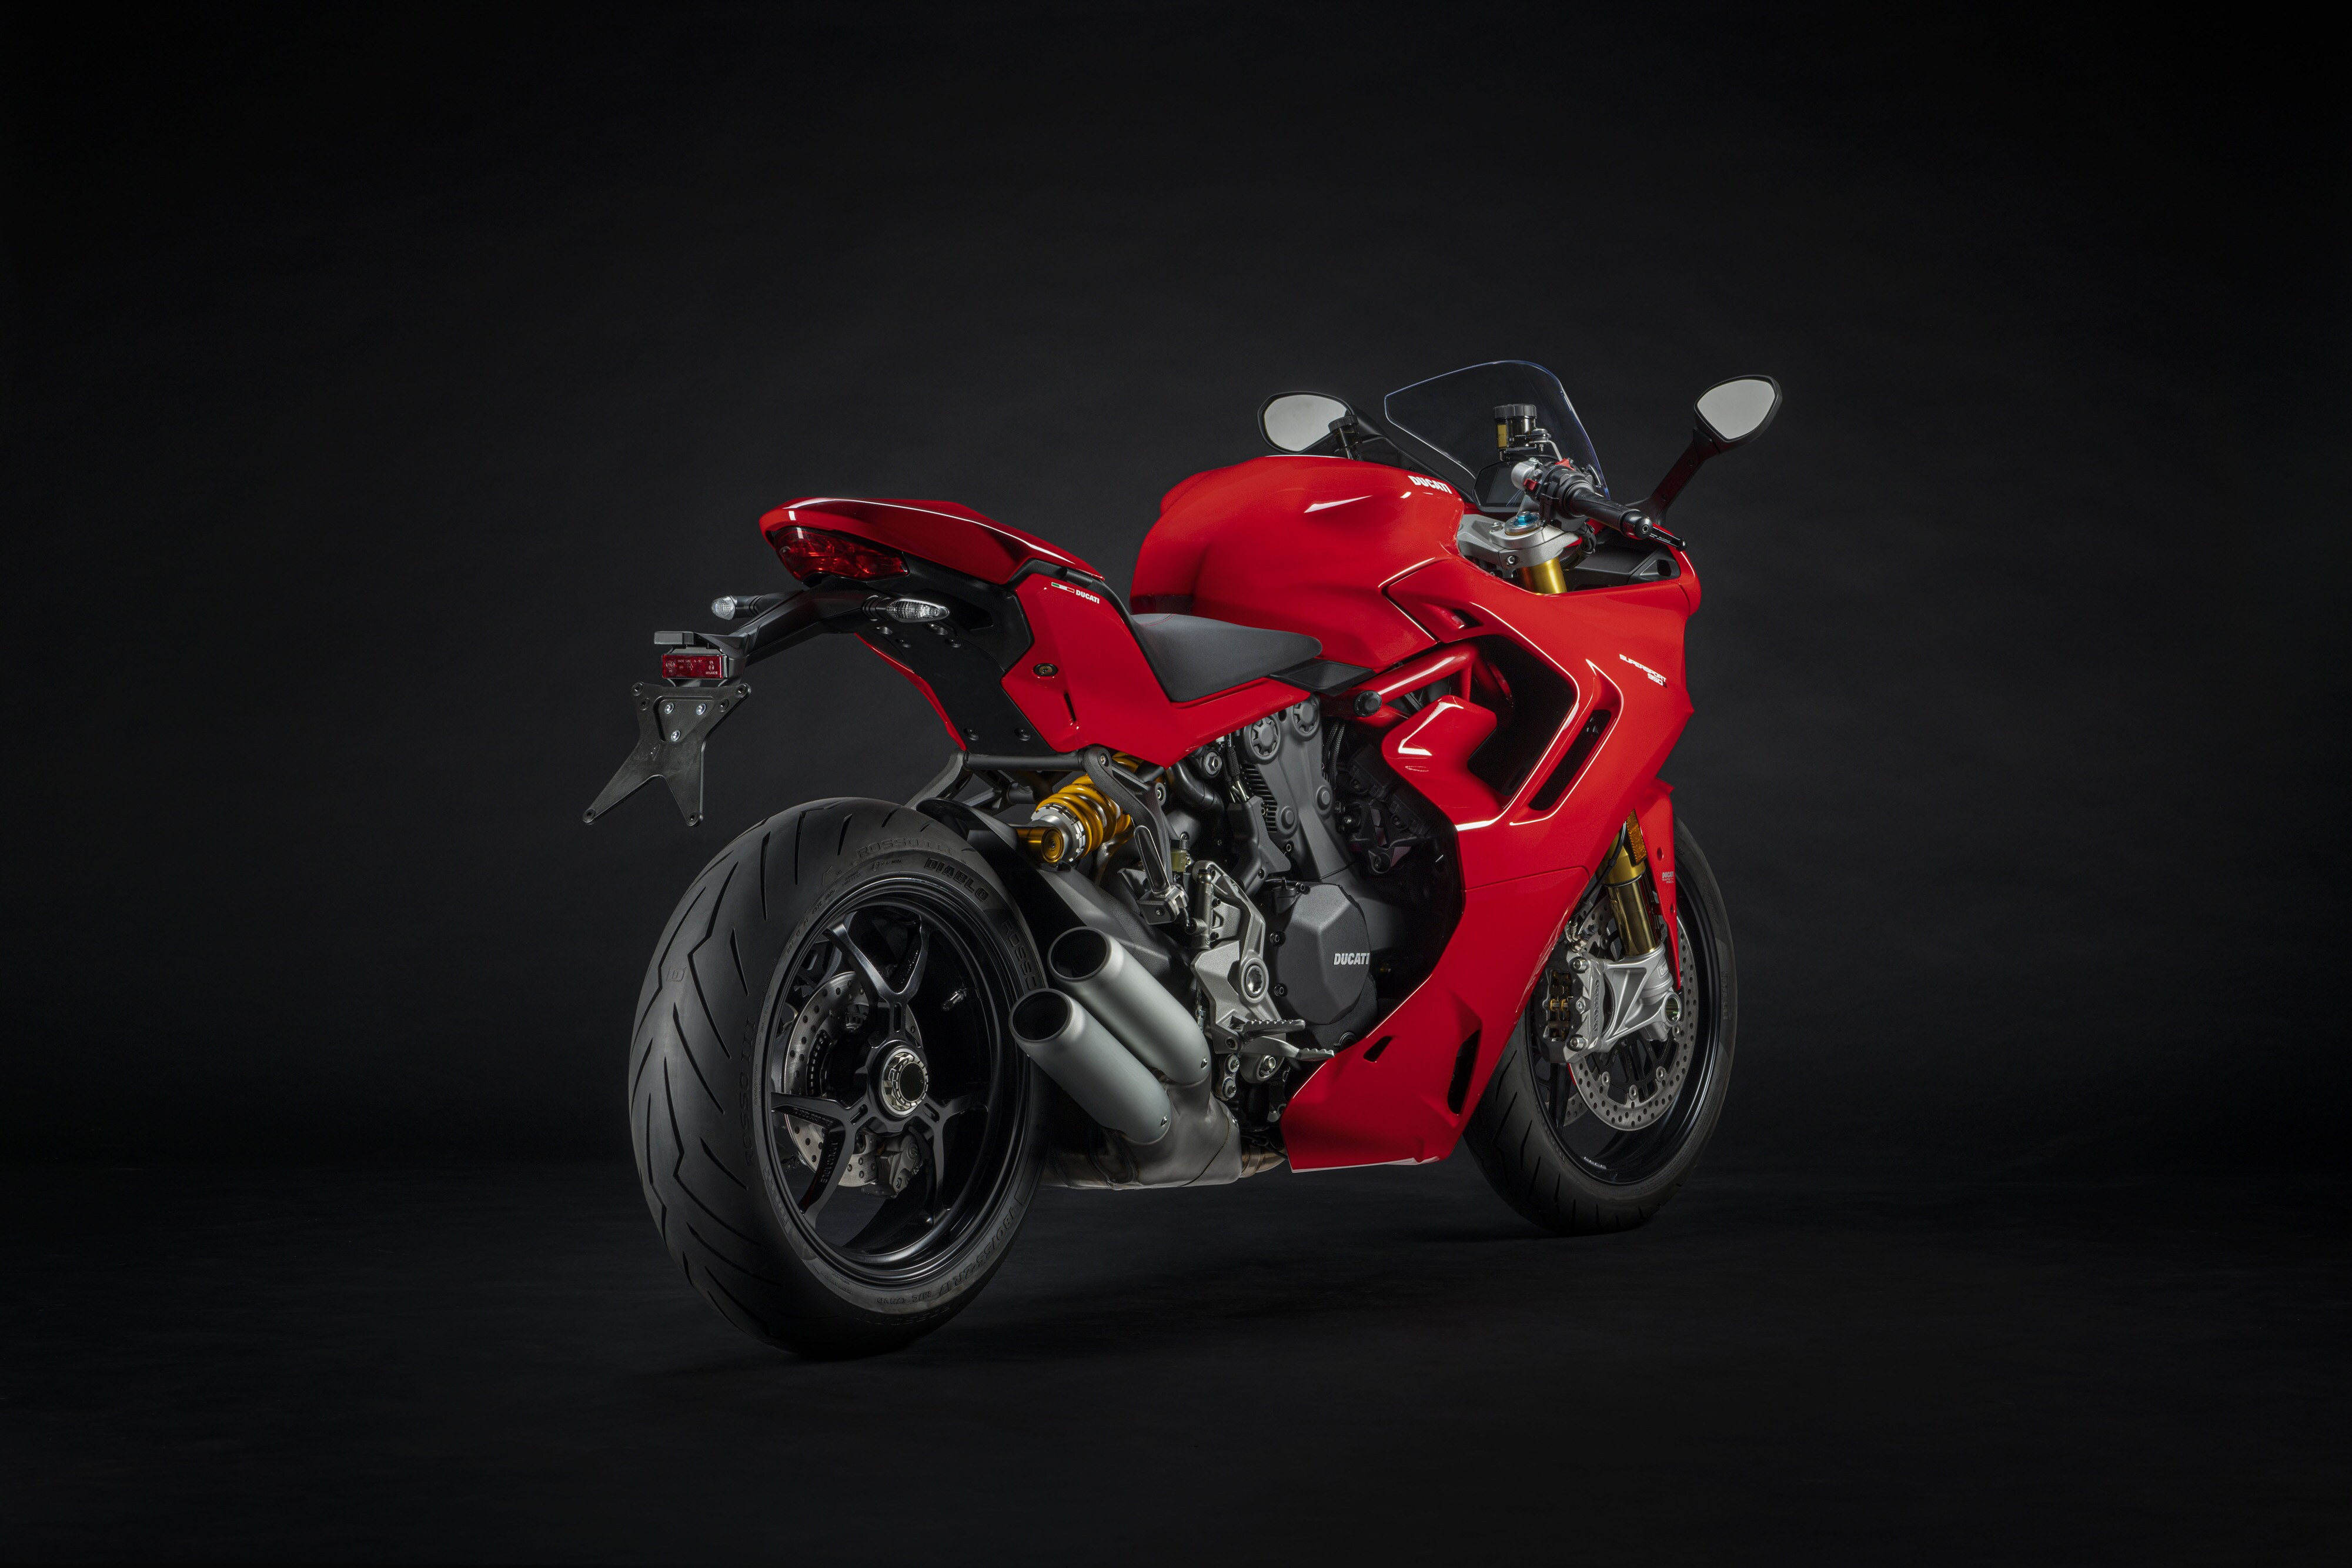 The SuperSport 950 S gets two color options namely Arctic White Silk fairing Ducati Red fairing.